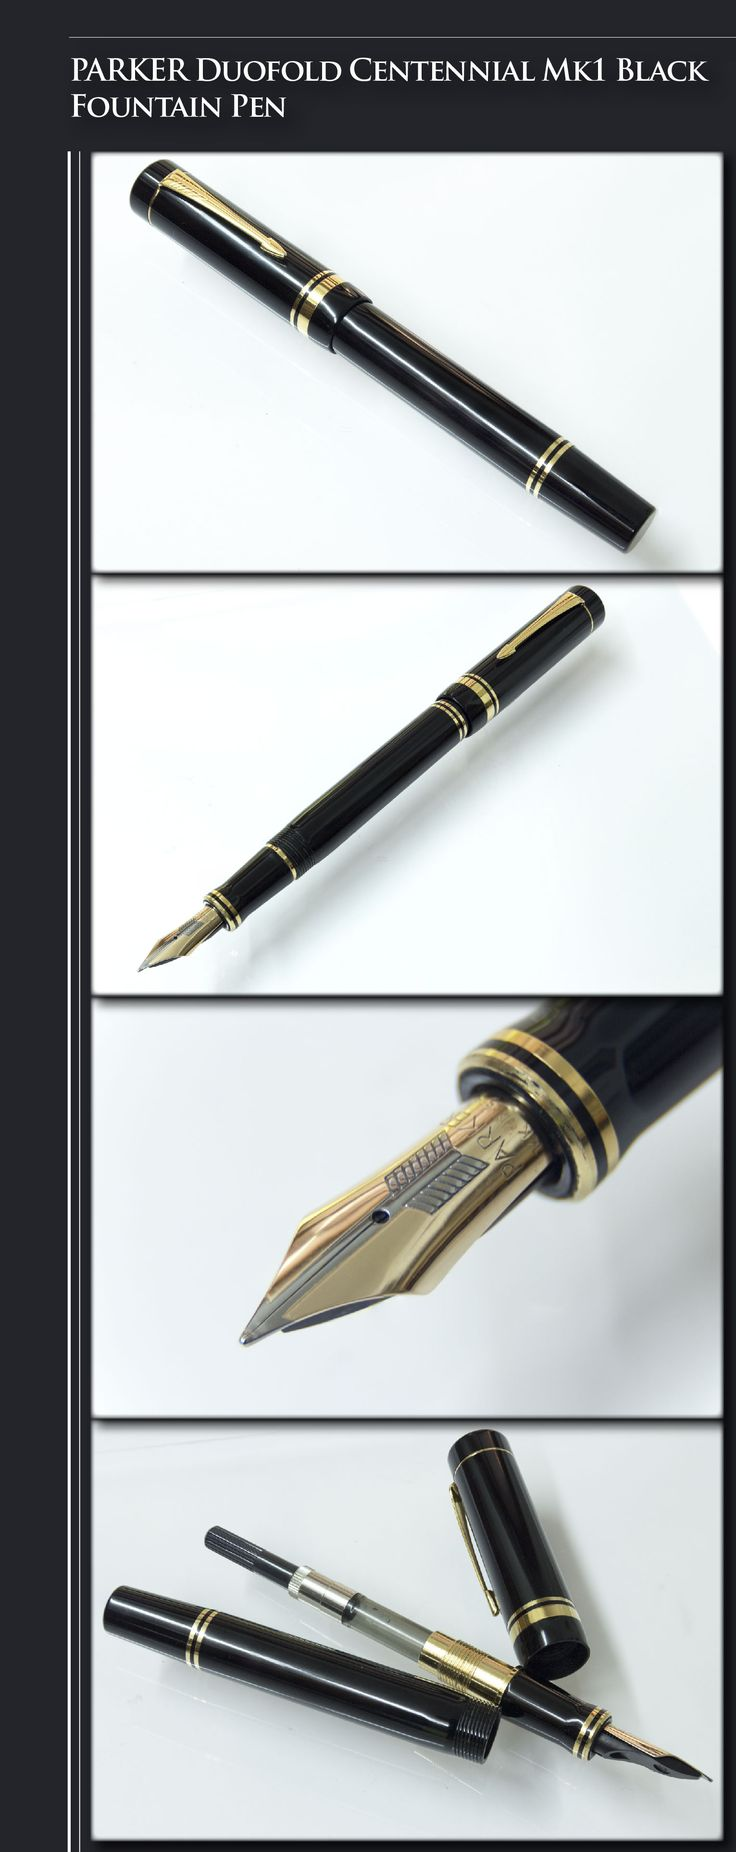 Best stylo plume images on pinterest writing